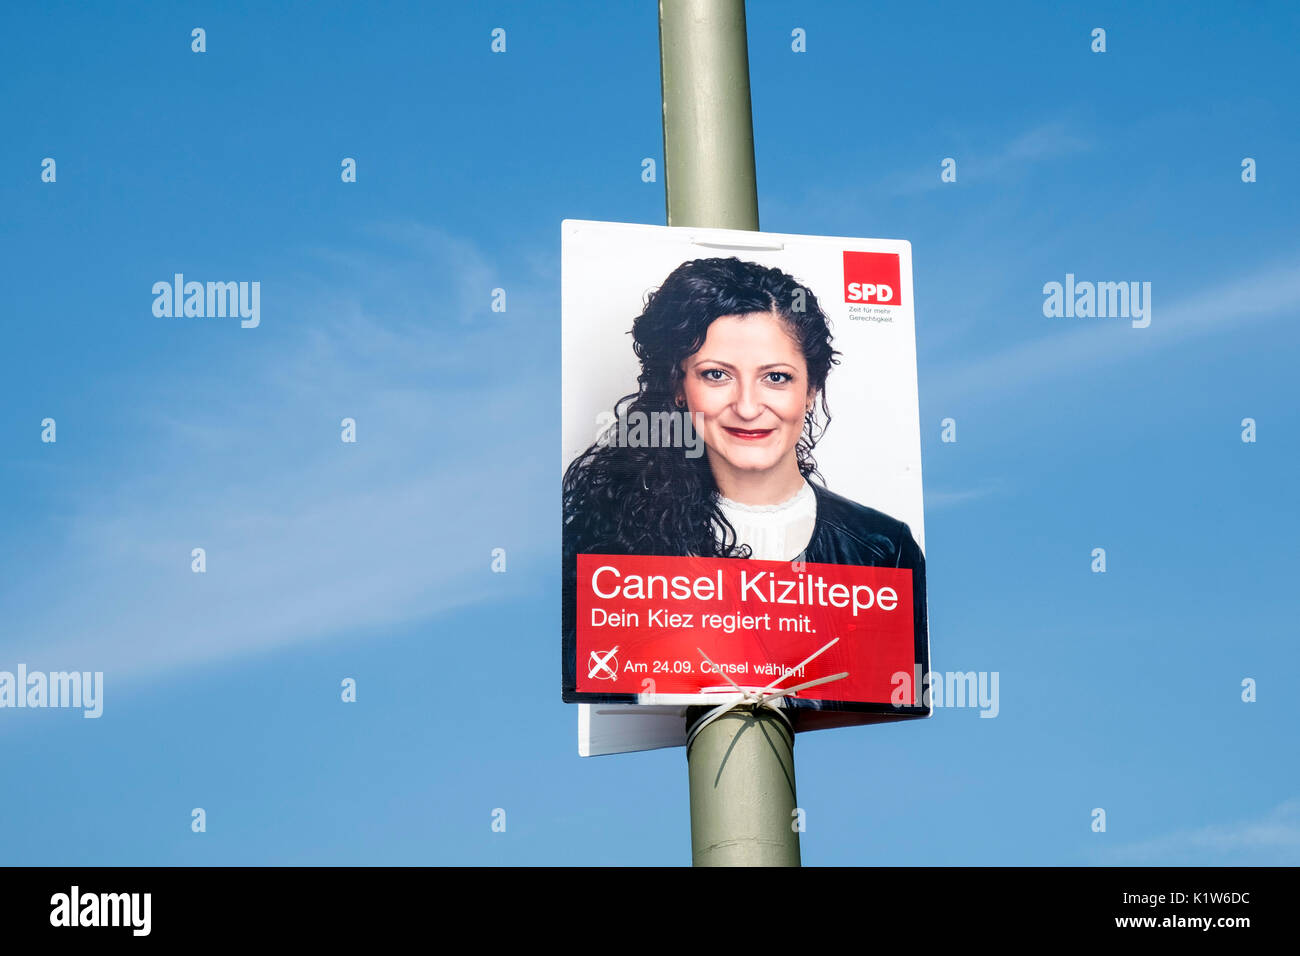 Election poster for SPD, Social Democratic Party of Europe, party in Berlin Germany August 2017. - Stock Image